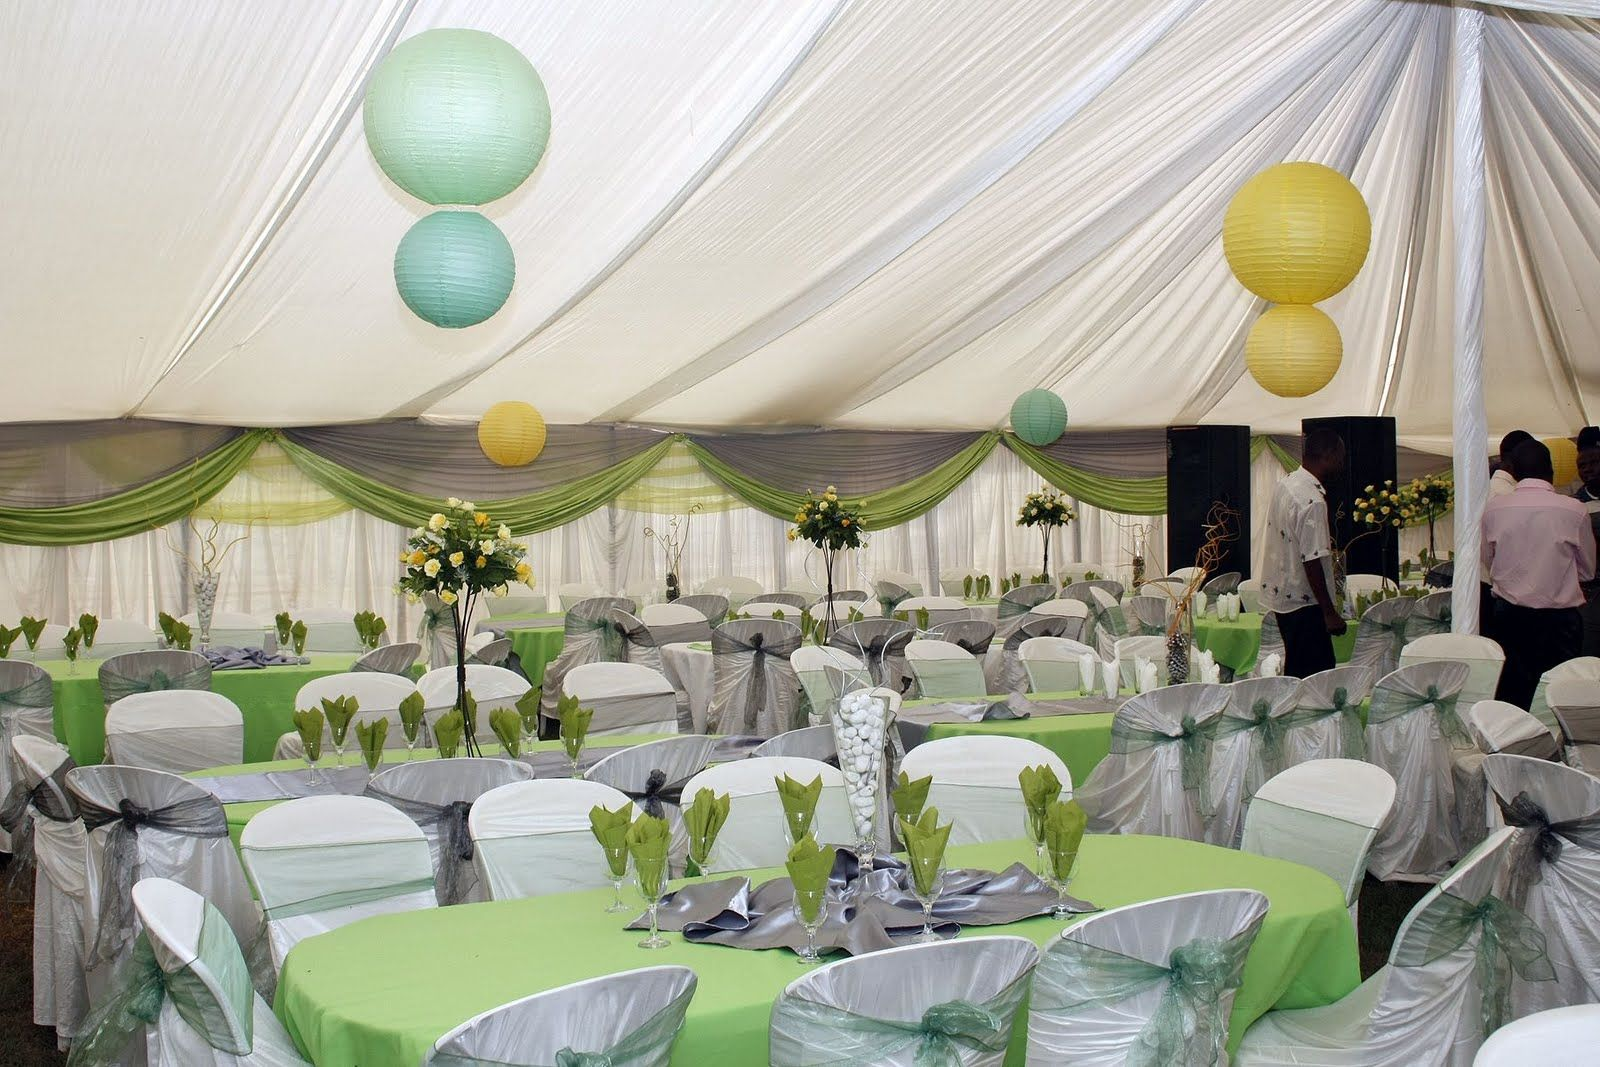 Garden Wedding Reception Decoration Ideas How To Make Simple Wedding